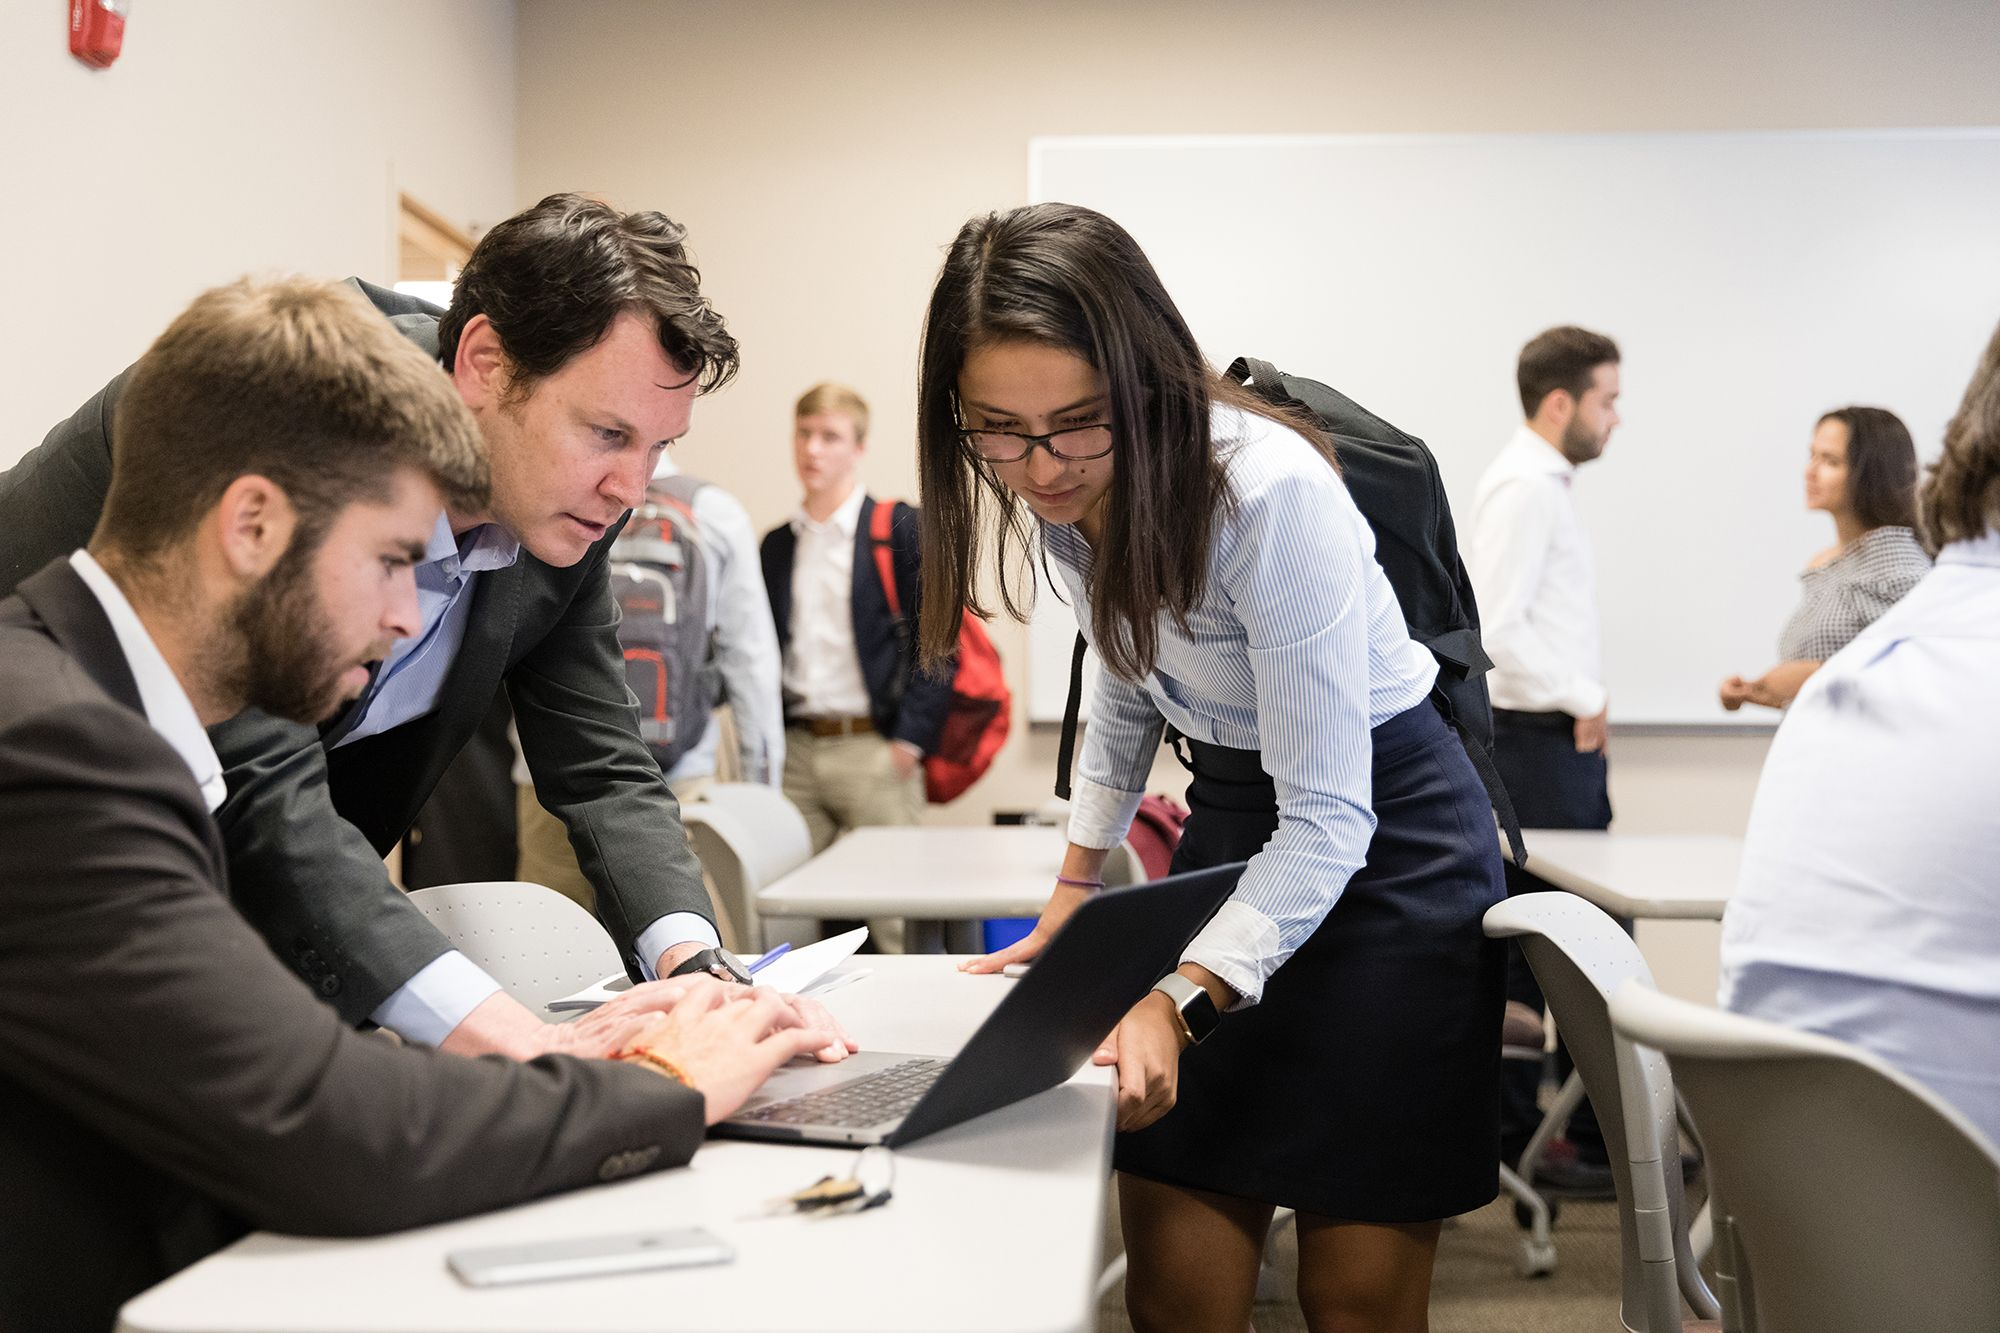 Students work on a project in an international business marketing class.